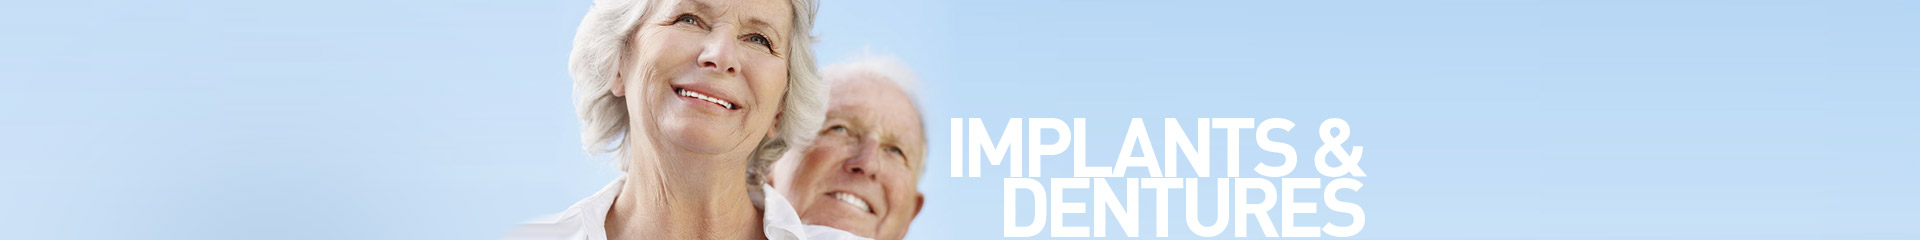 affordable implants and dentures in Burlington